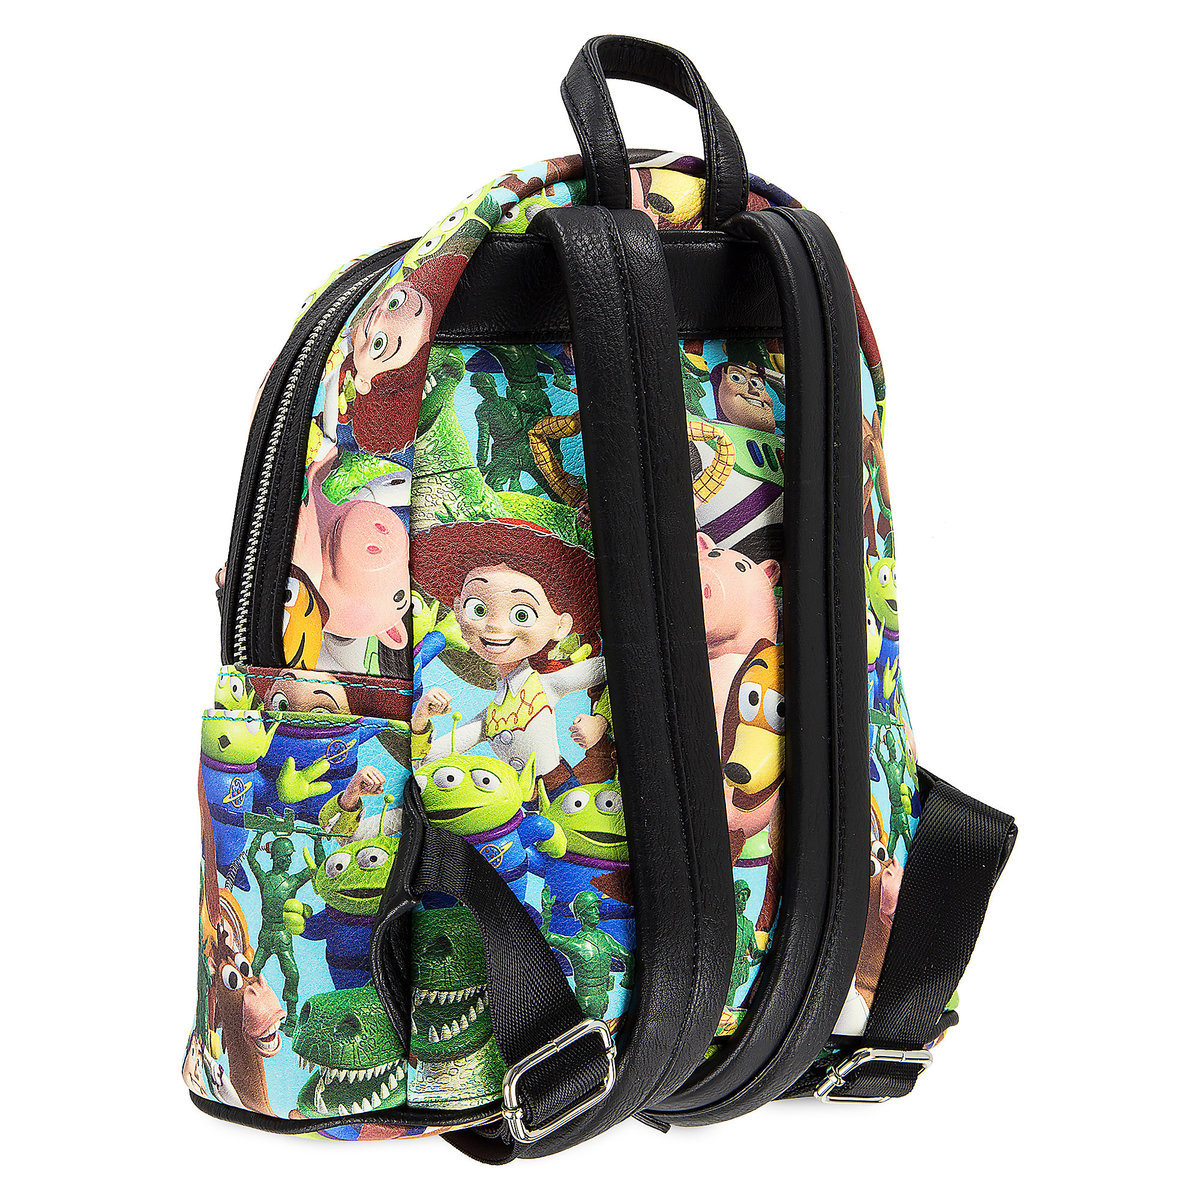 e2a9c689abd Disney Parks Mini Backpack - Toy Story Character Fun by Loungefly. Tap to  expand